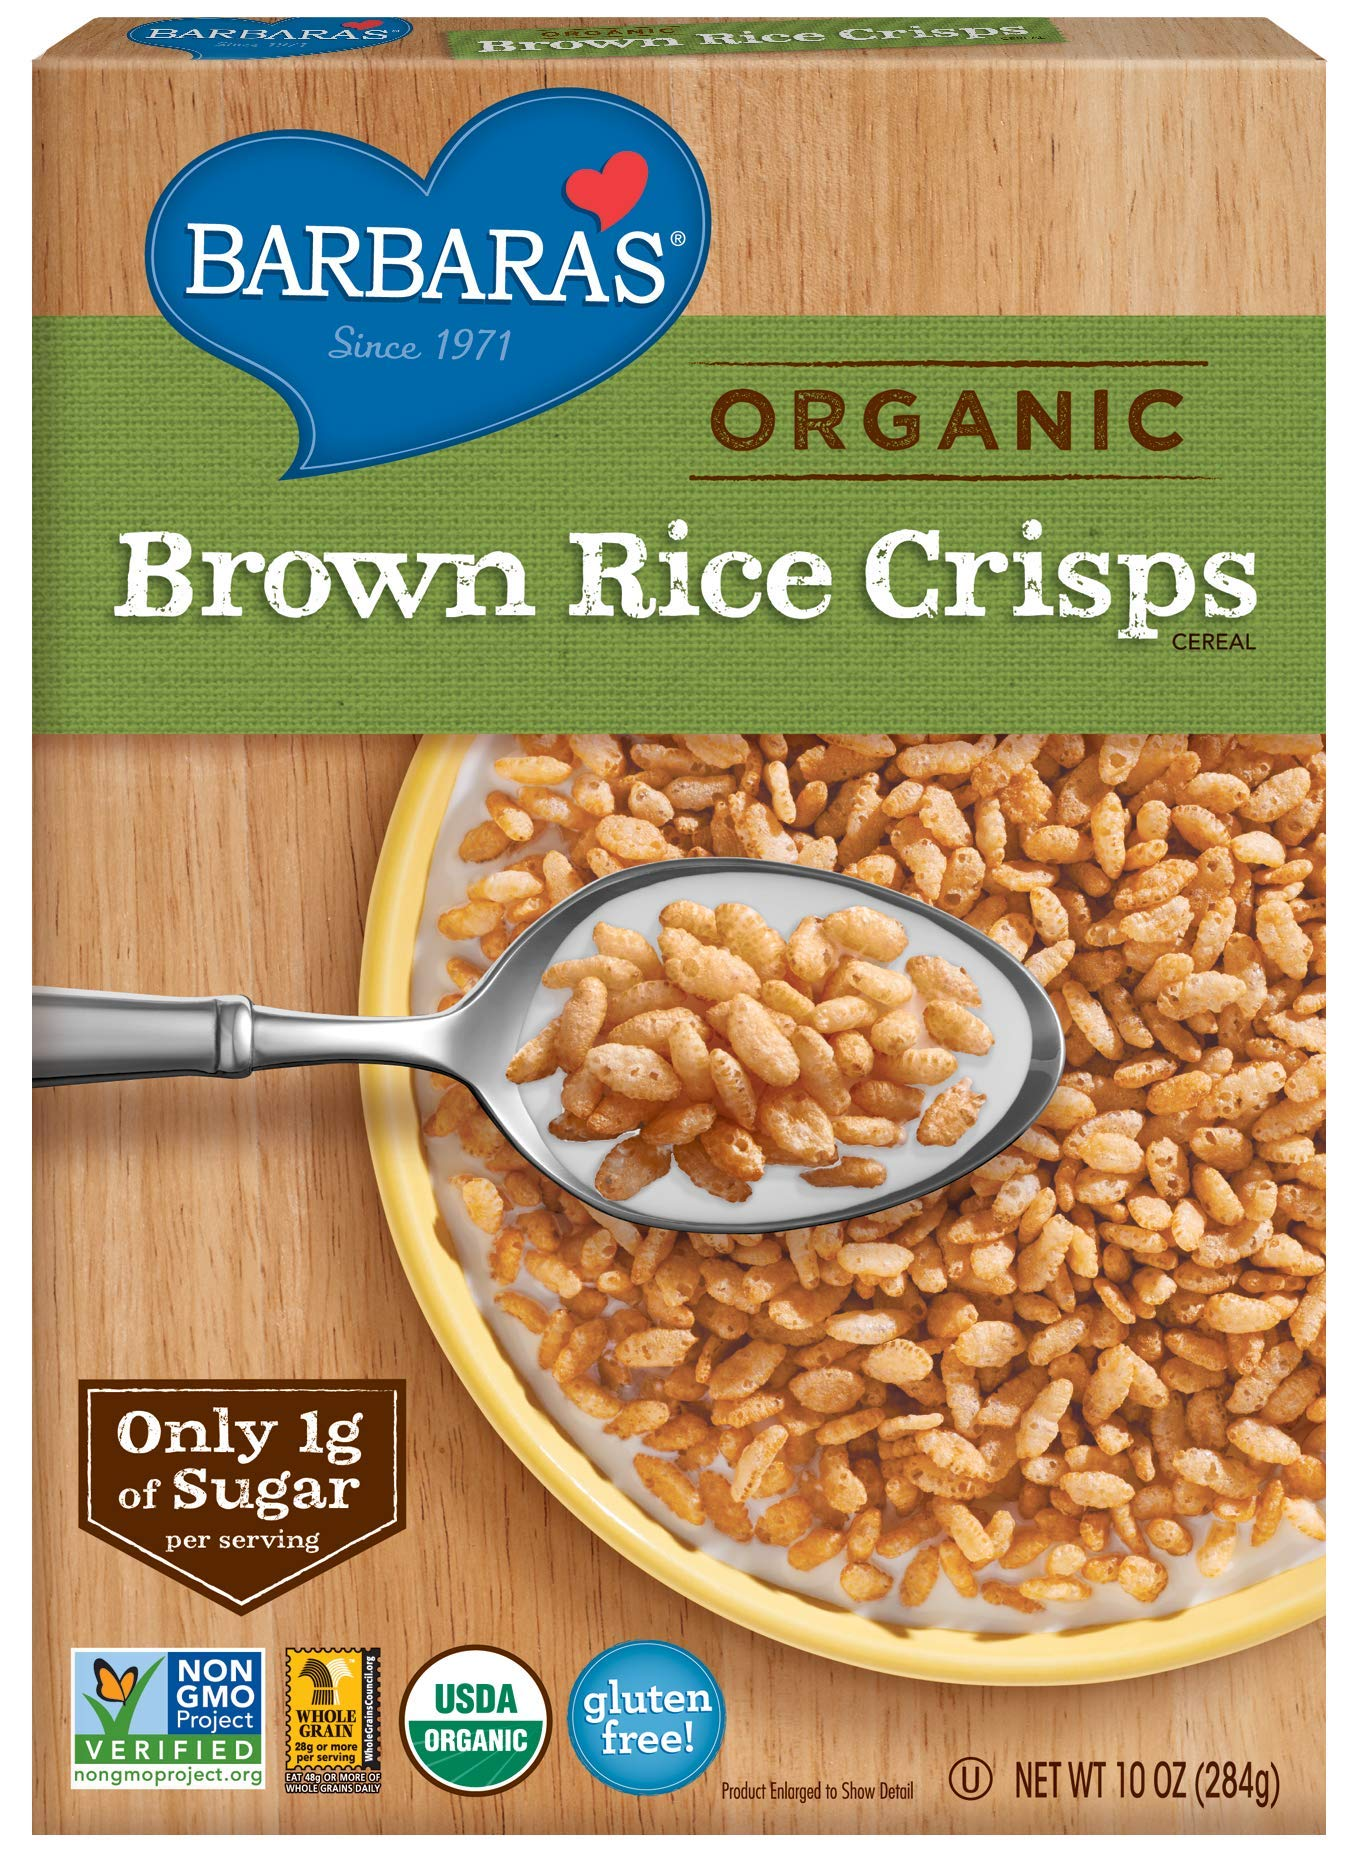 Barbara's Bakery Organic Brown Rice Crisps Cereal, 10 Ounce (Pack of 6) by Barbara's